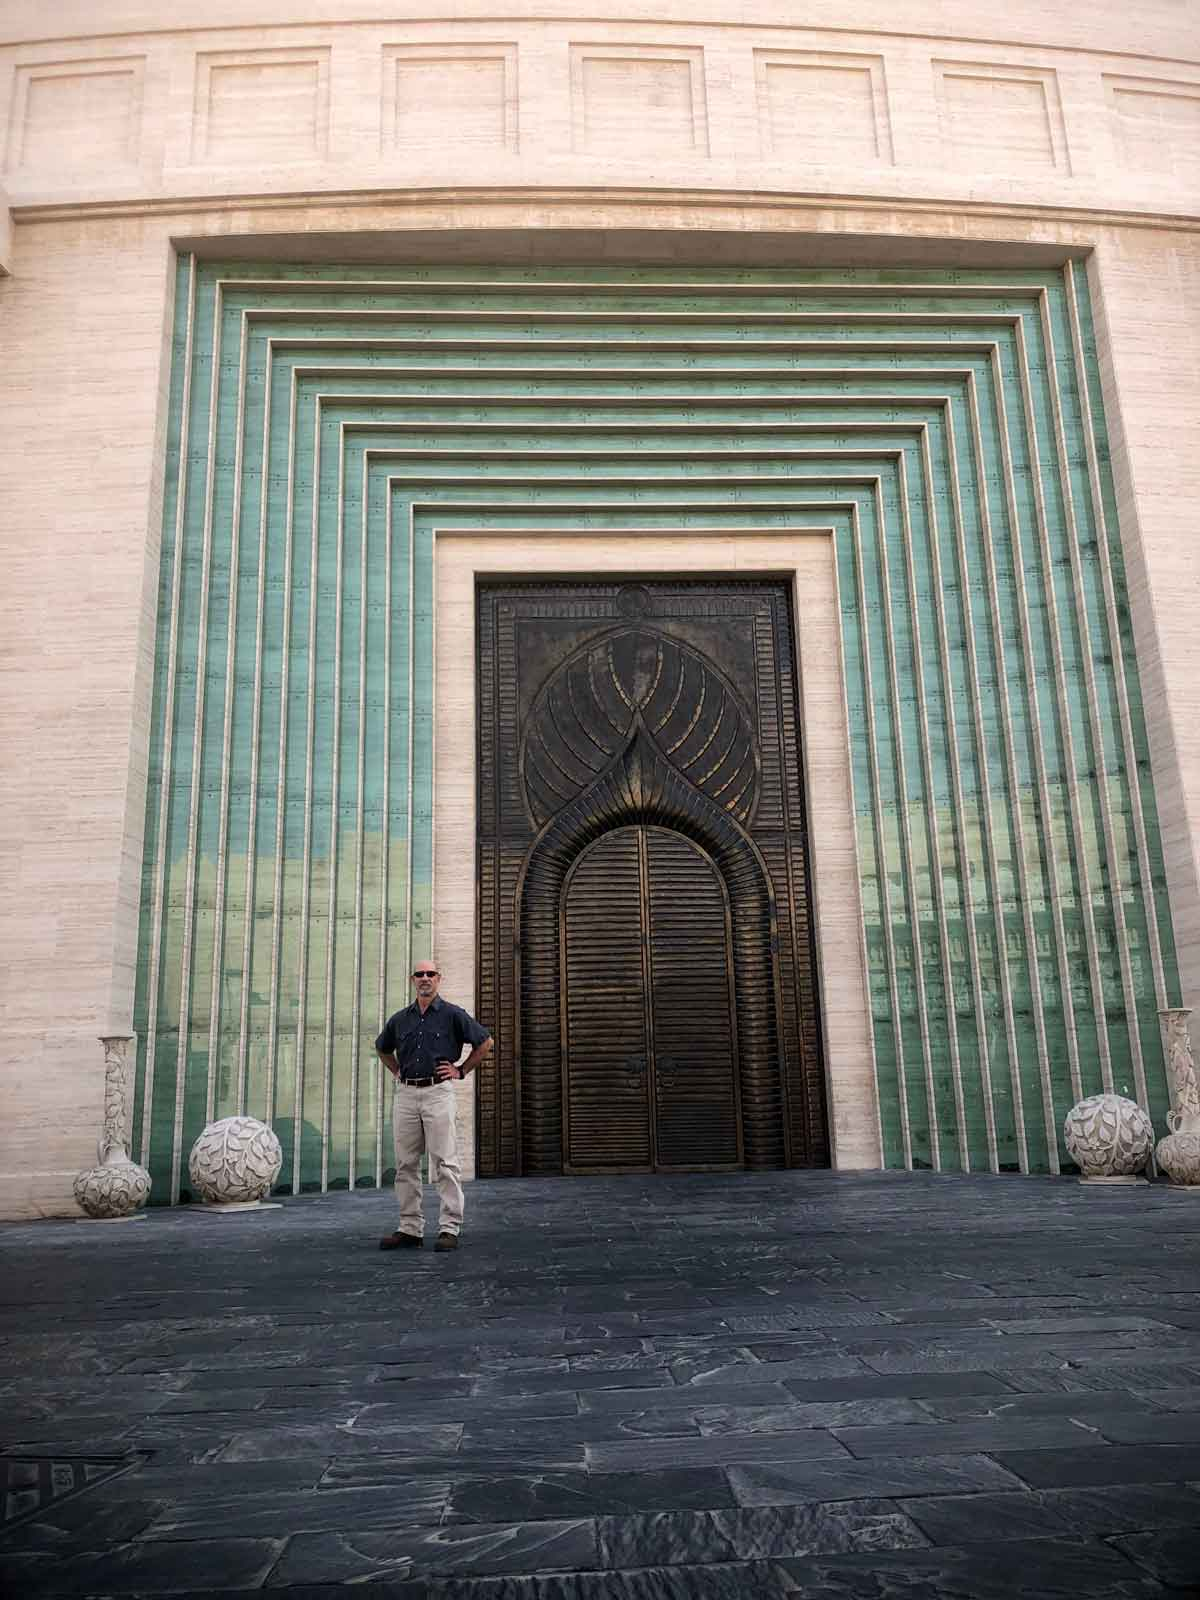 A gigantic doorway at the Katara Cultural Village.